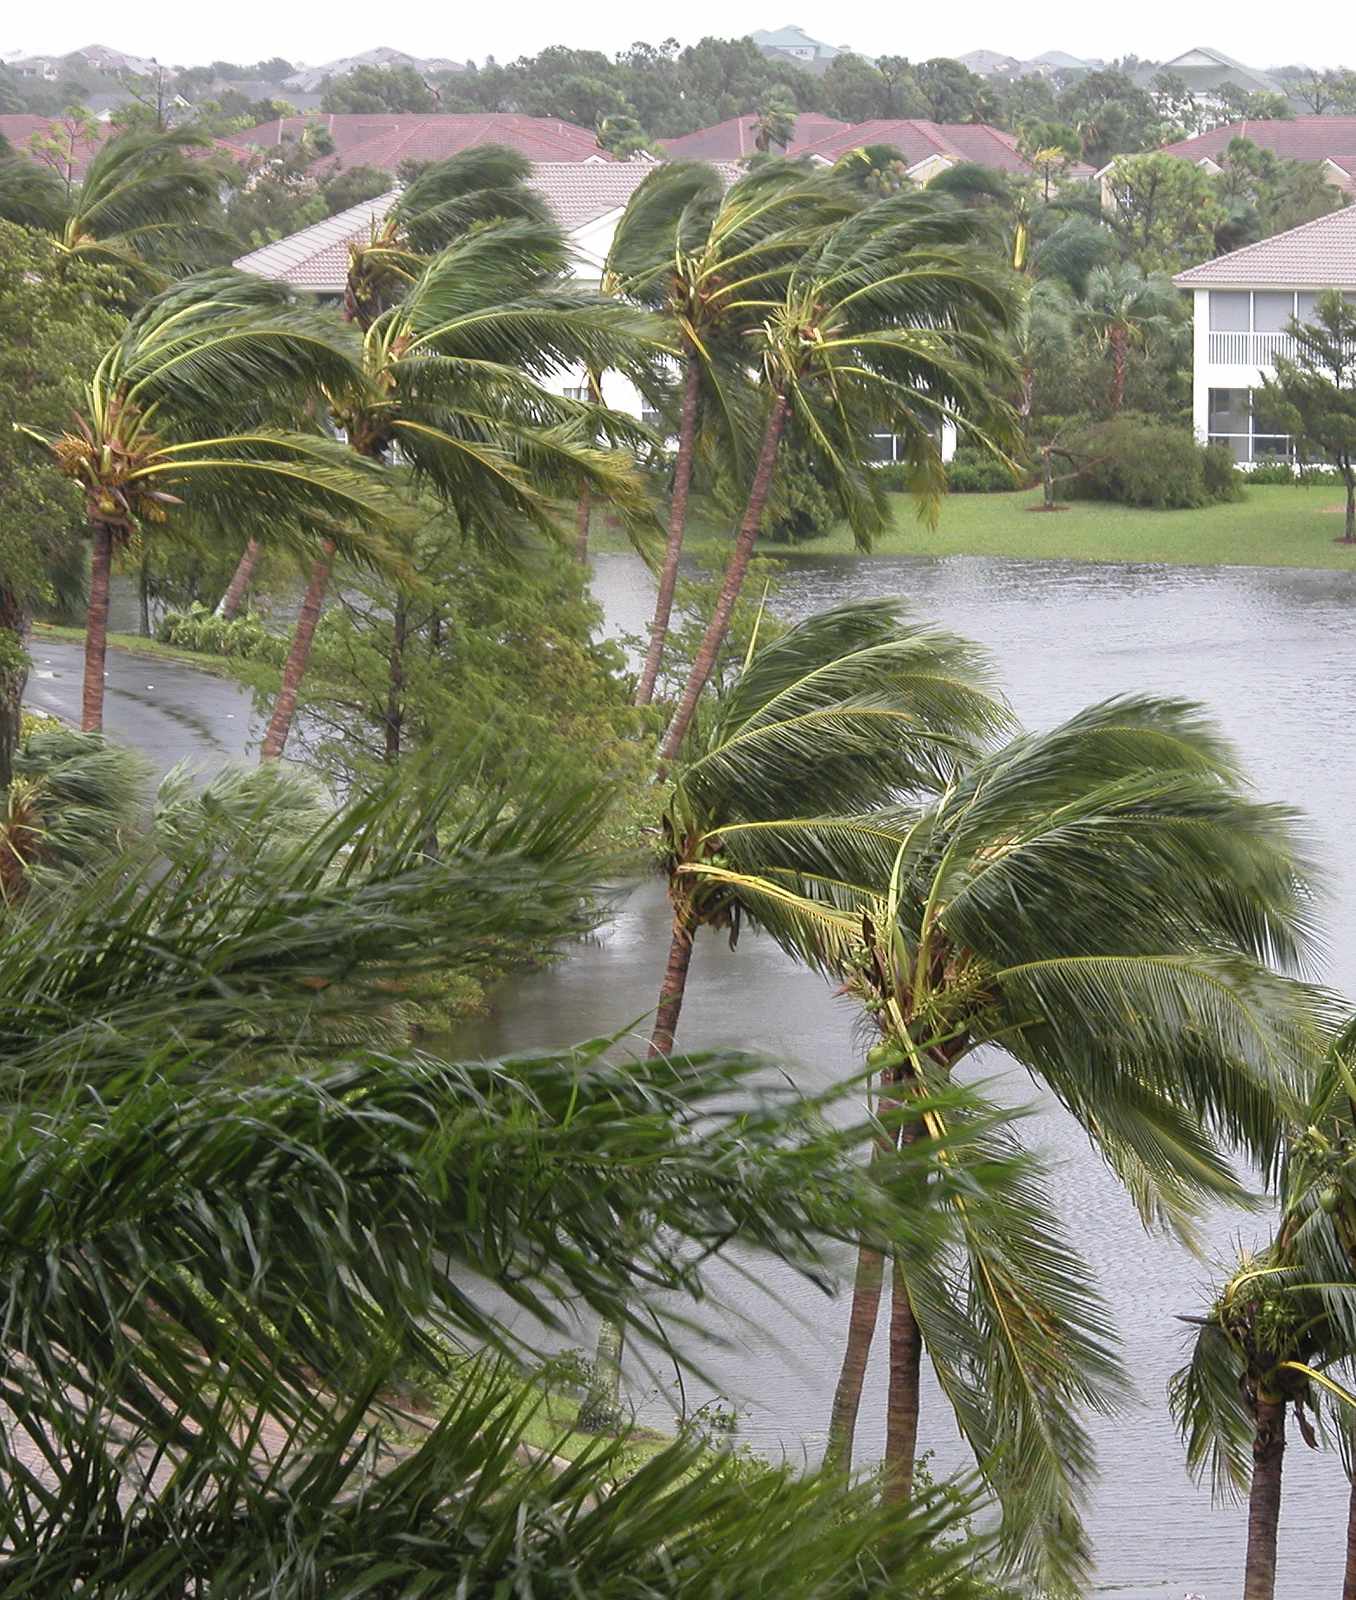 How long can trees and palms survive flooding and heavy winds before injury results?